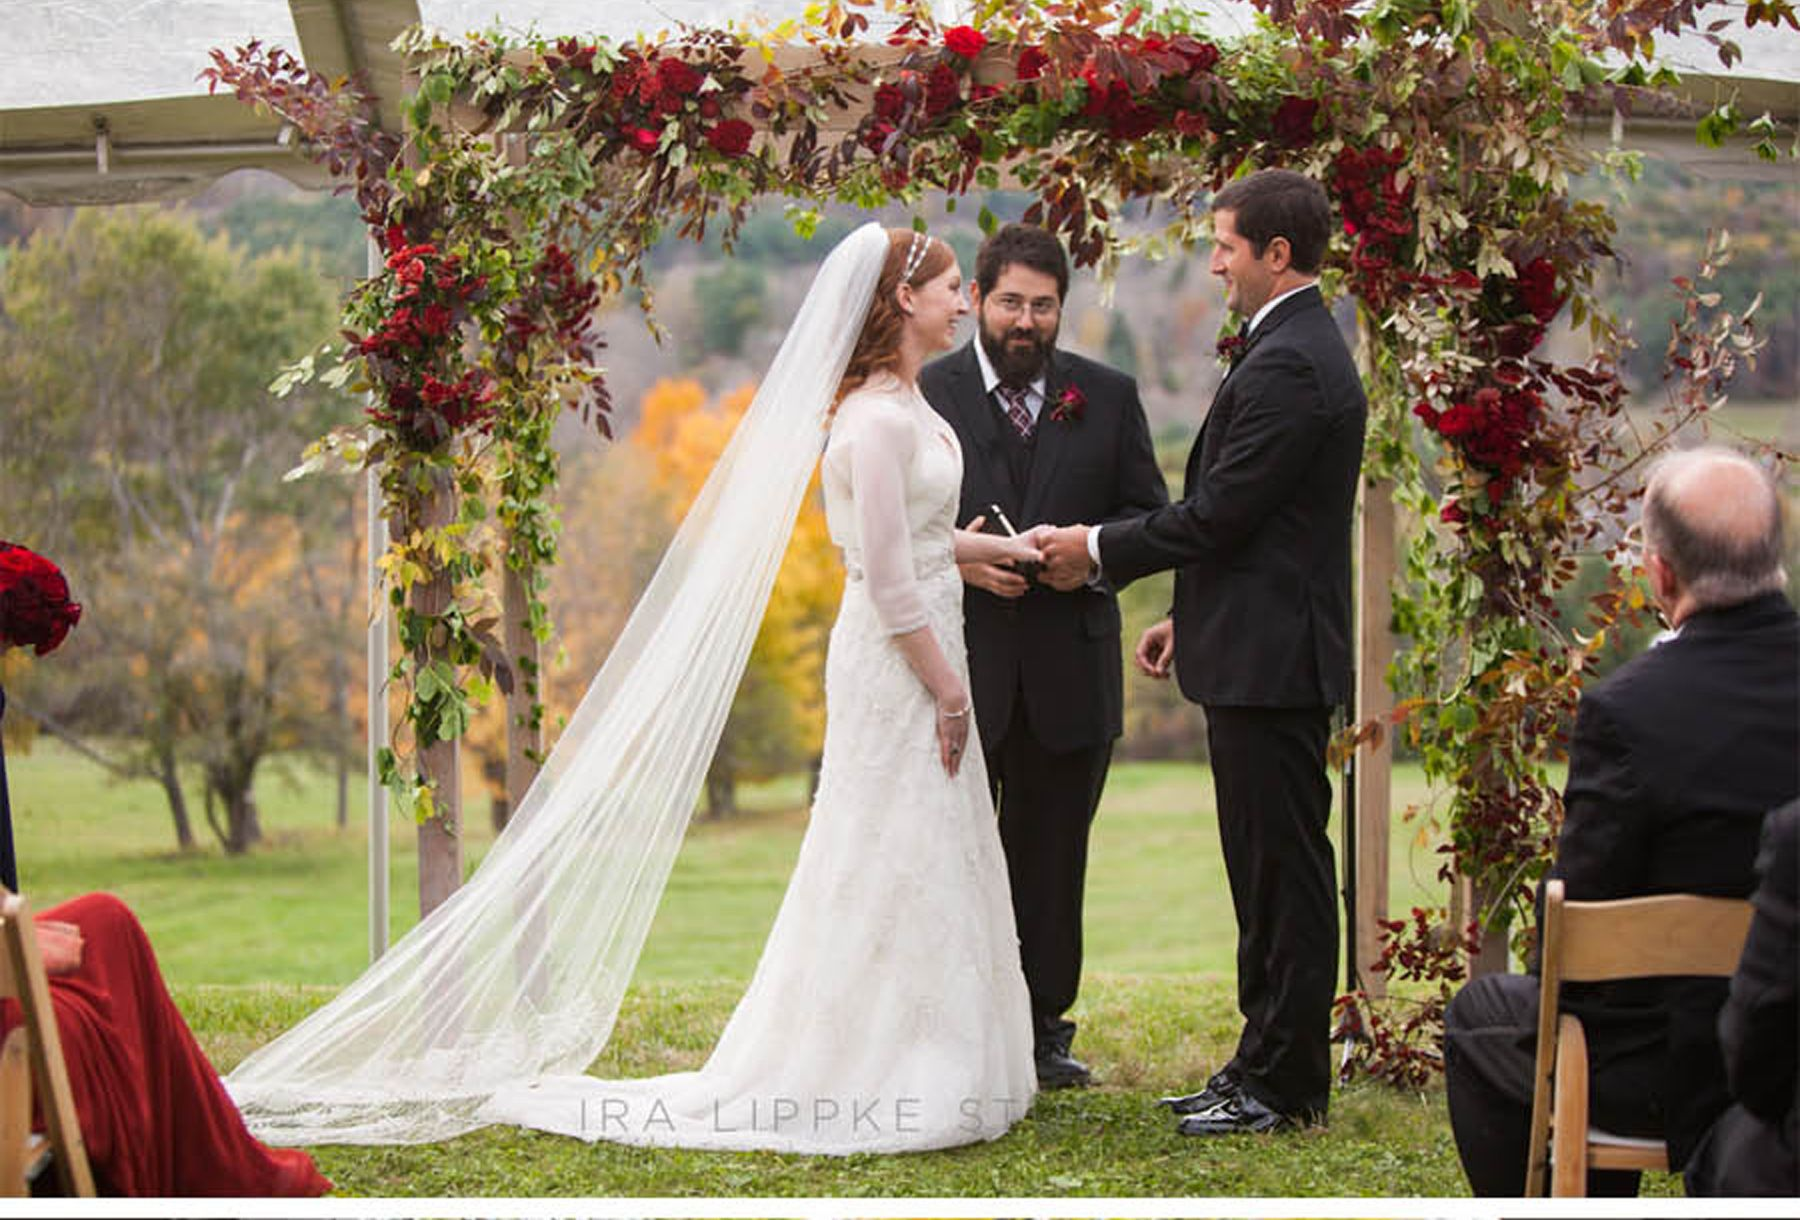 Inspiration Outoor Ceremonies: Gorgeous Autumn Floral Inspiration From Outdoor Ceremony